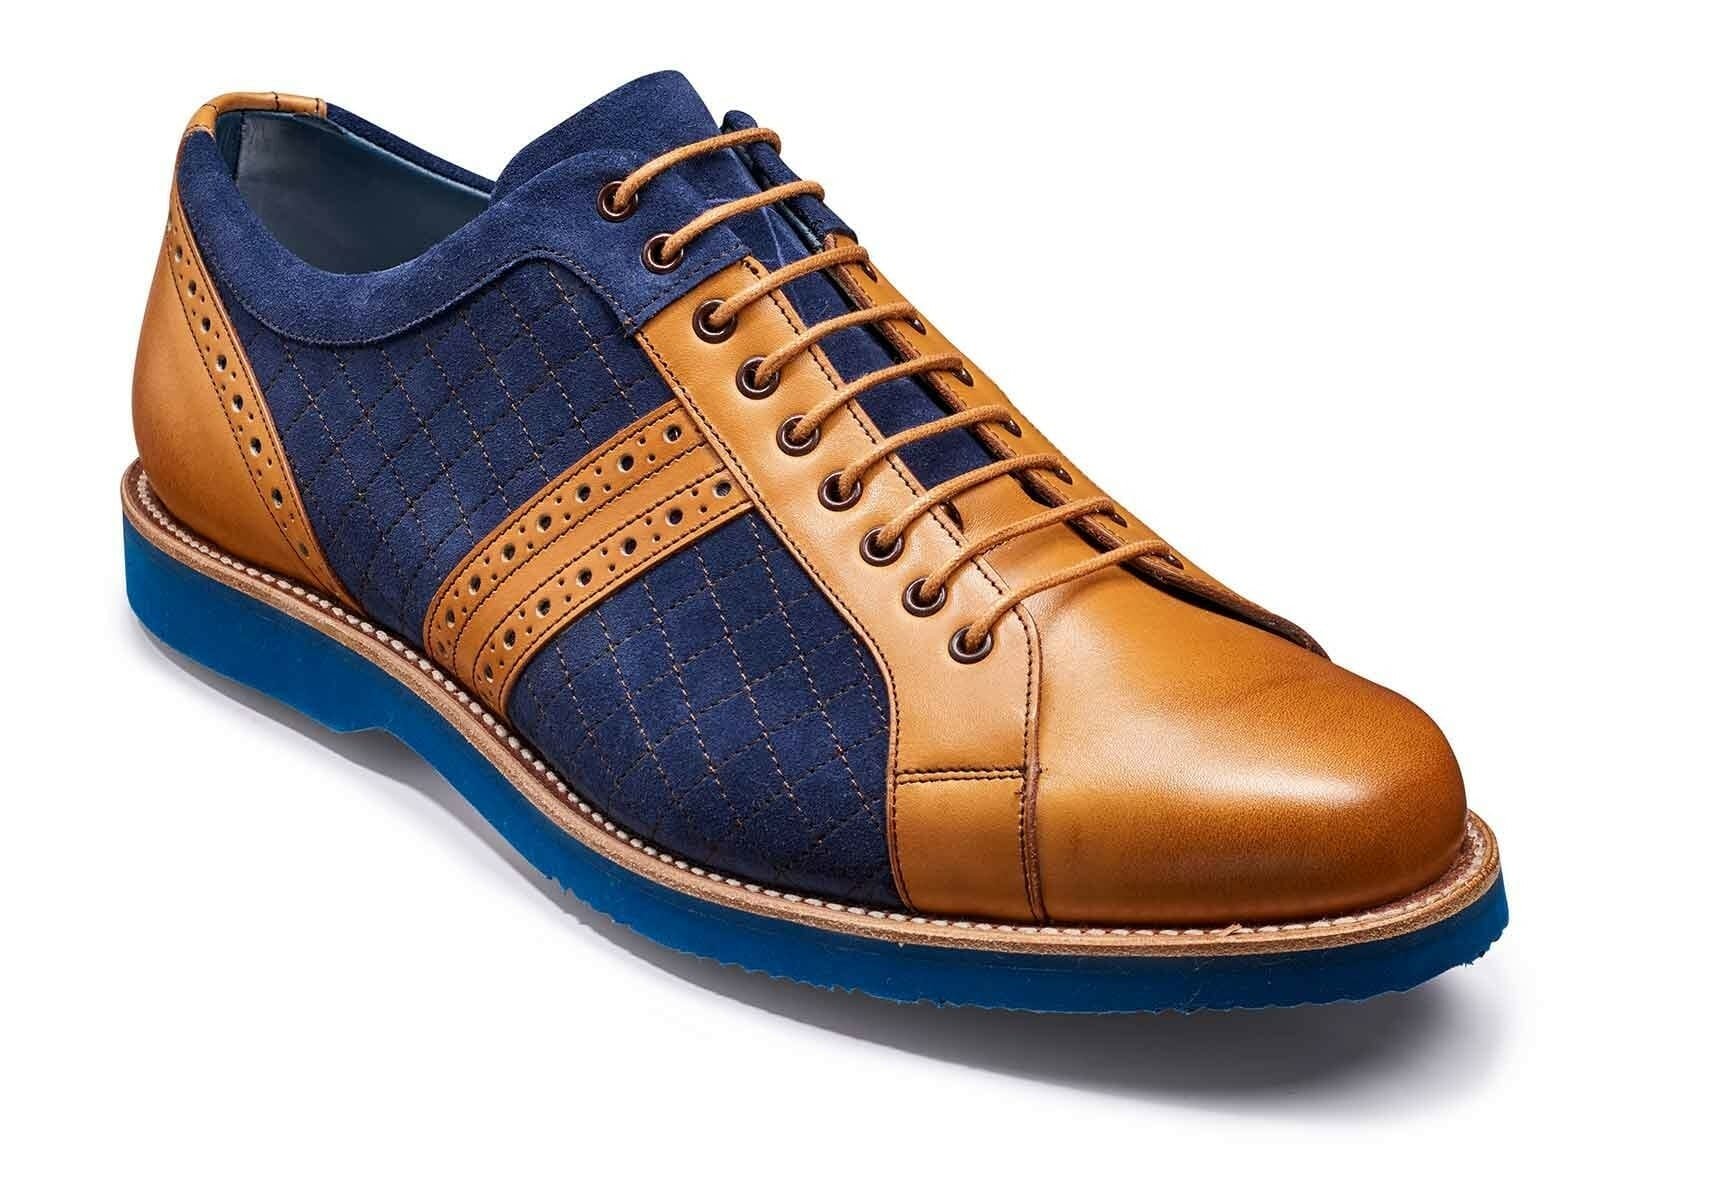 Barker Shoes' contemporary